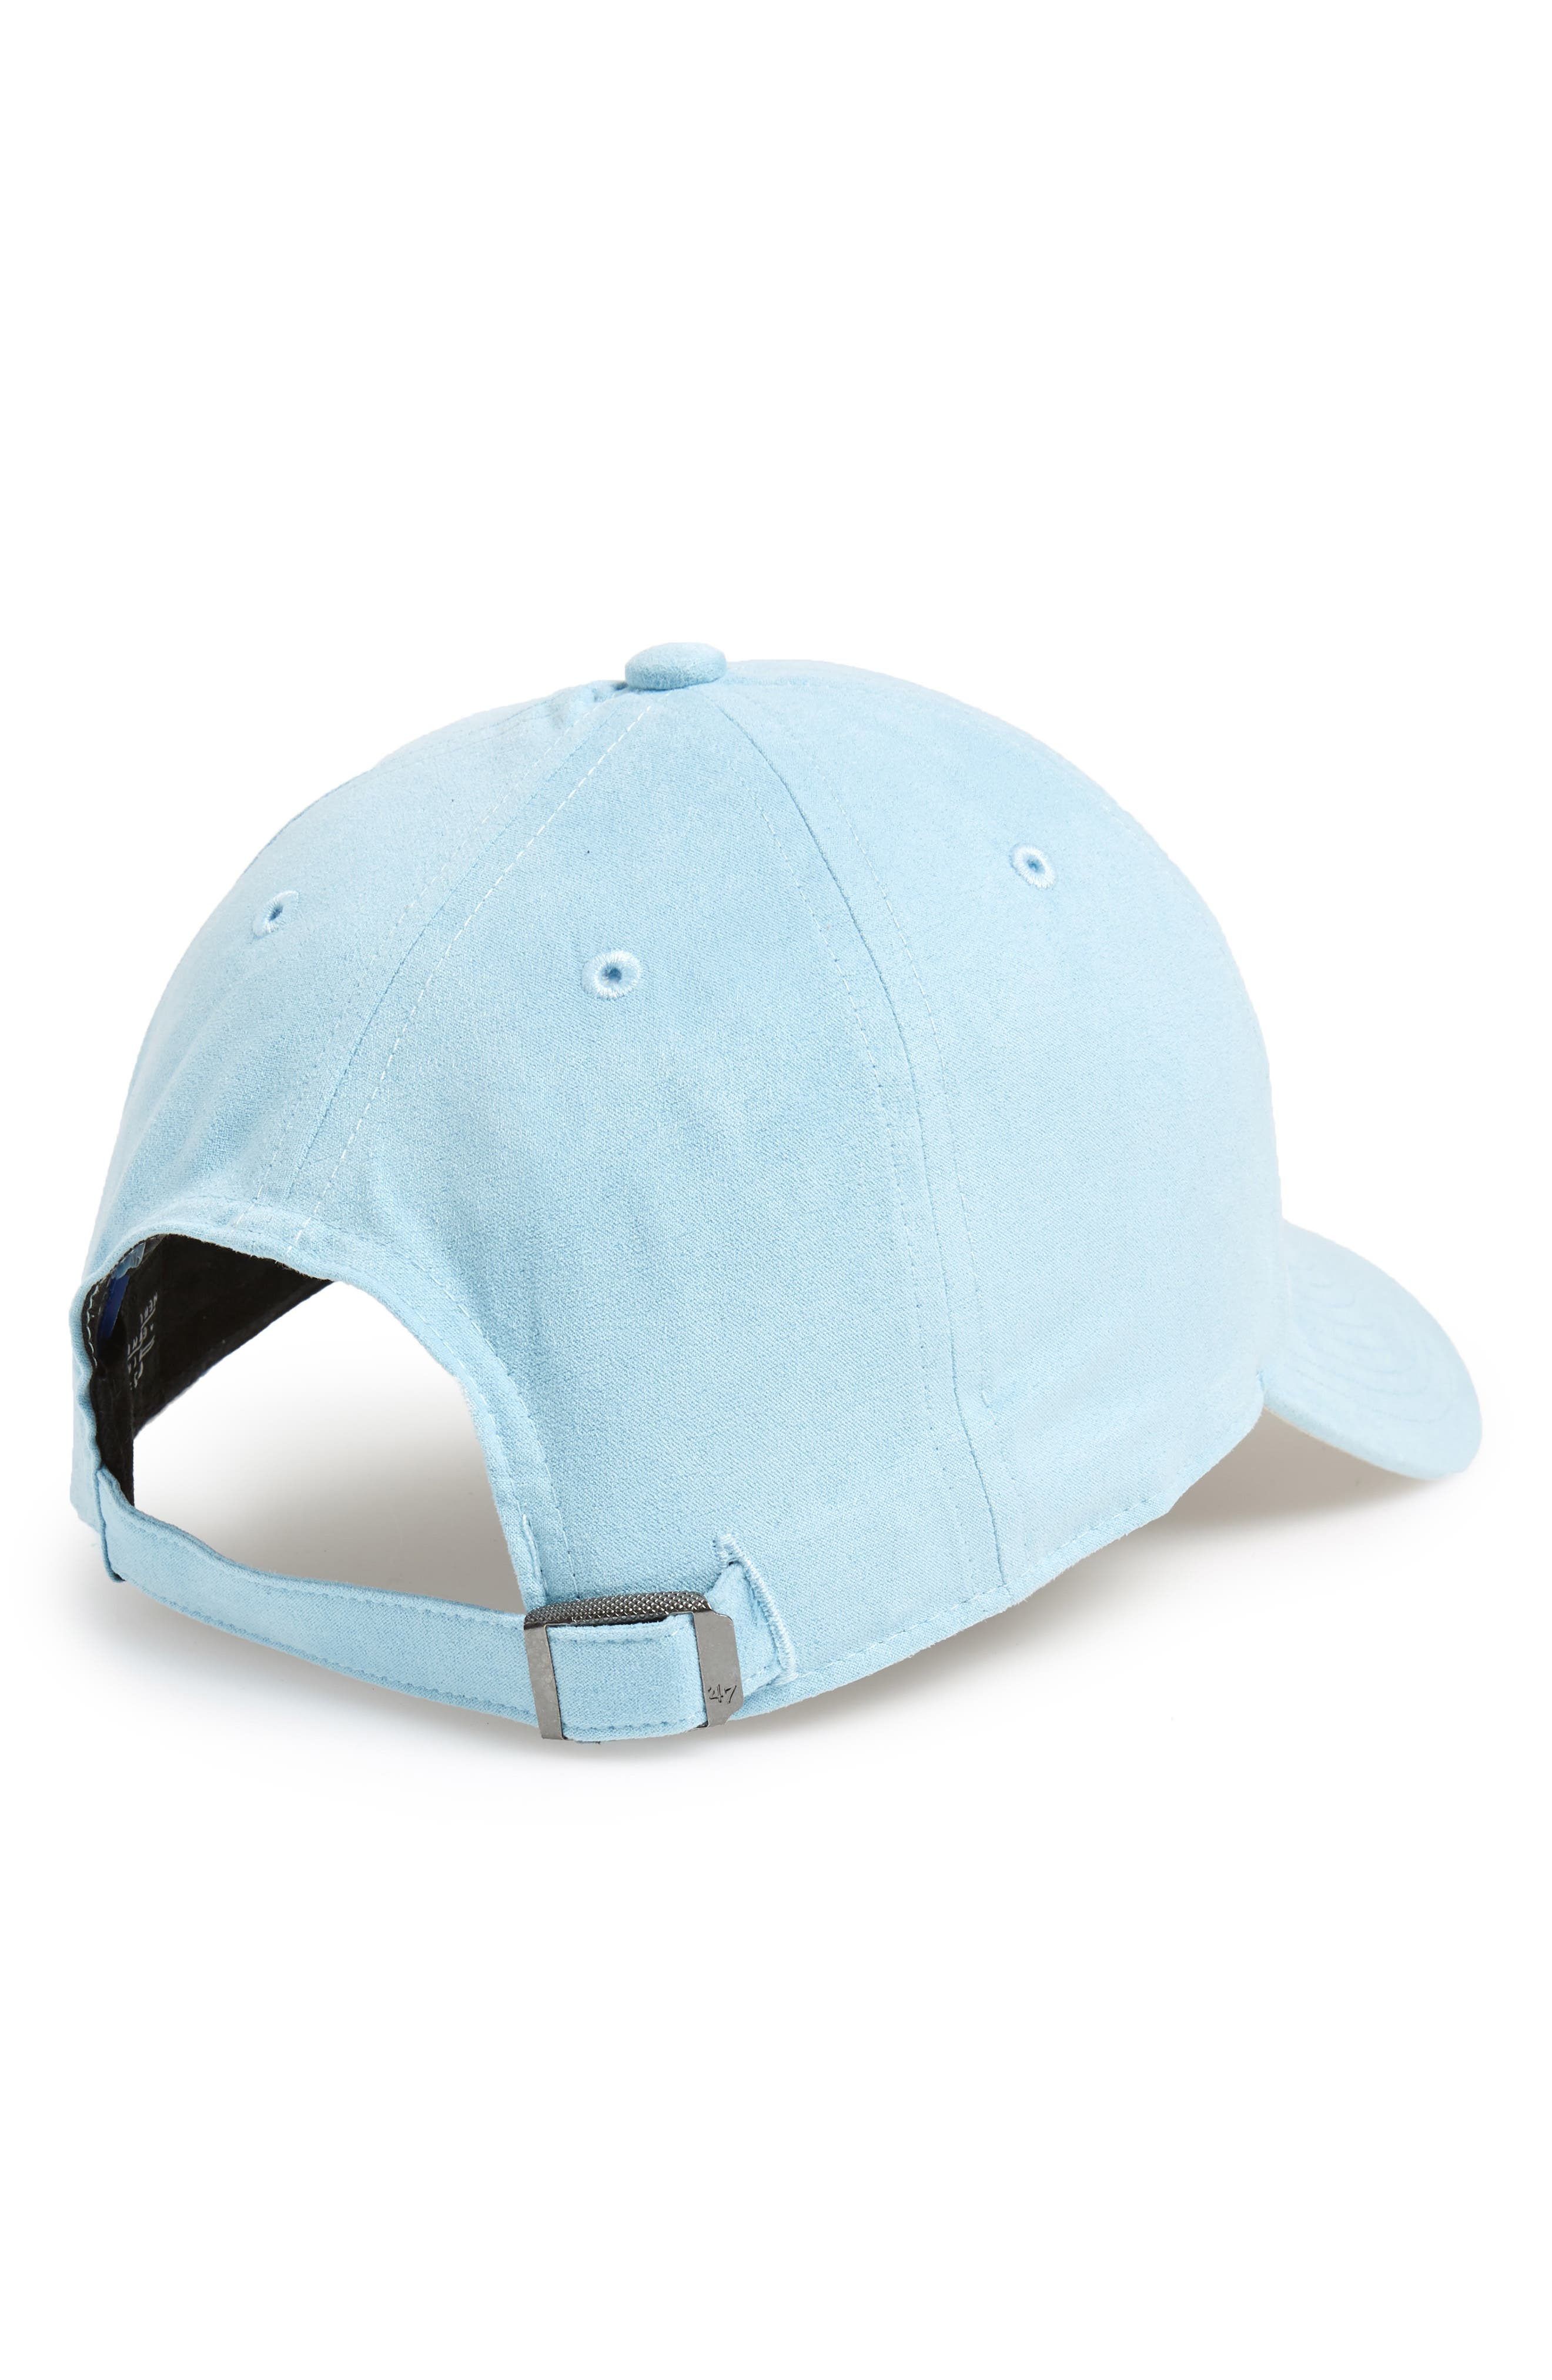 Ultrabasic Clean Up Los Angeles Dodgers Baseball Cap,                             Alternate thumbnail 2, color,                             LIGHT BLUE